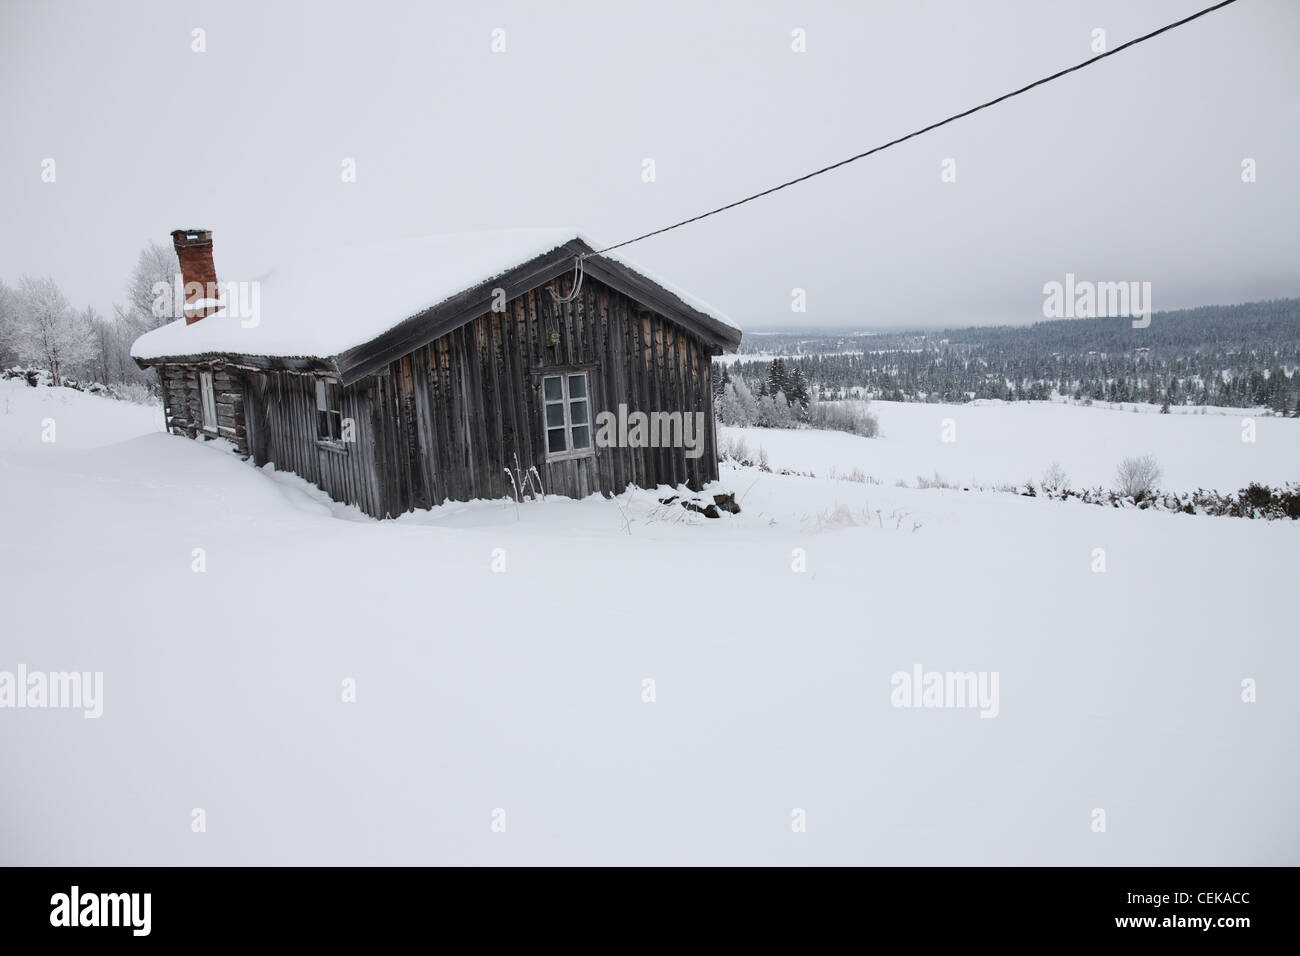 Norway, 20120210, winter landscape - Stock Image